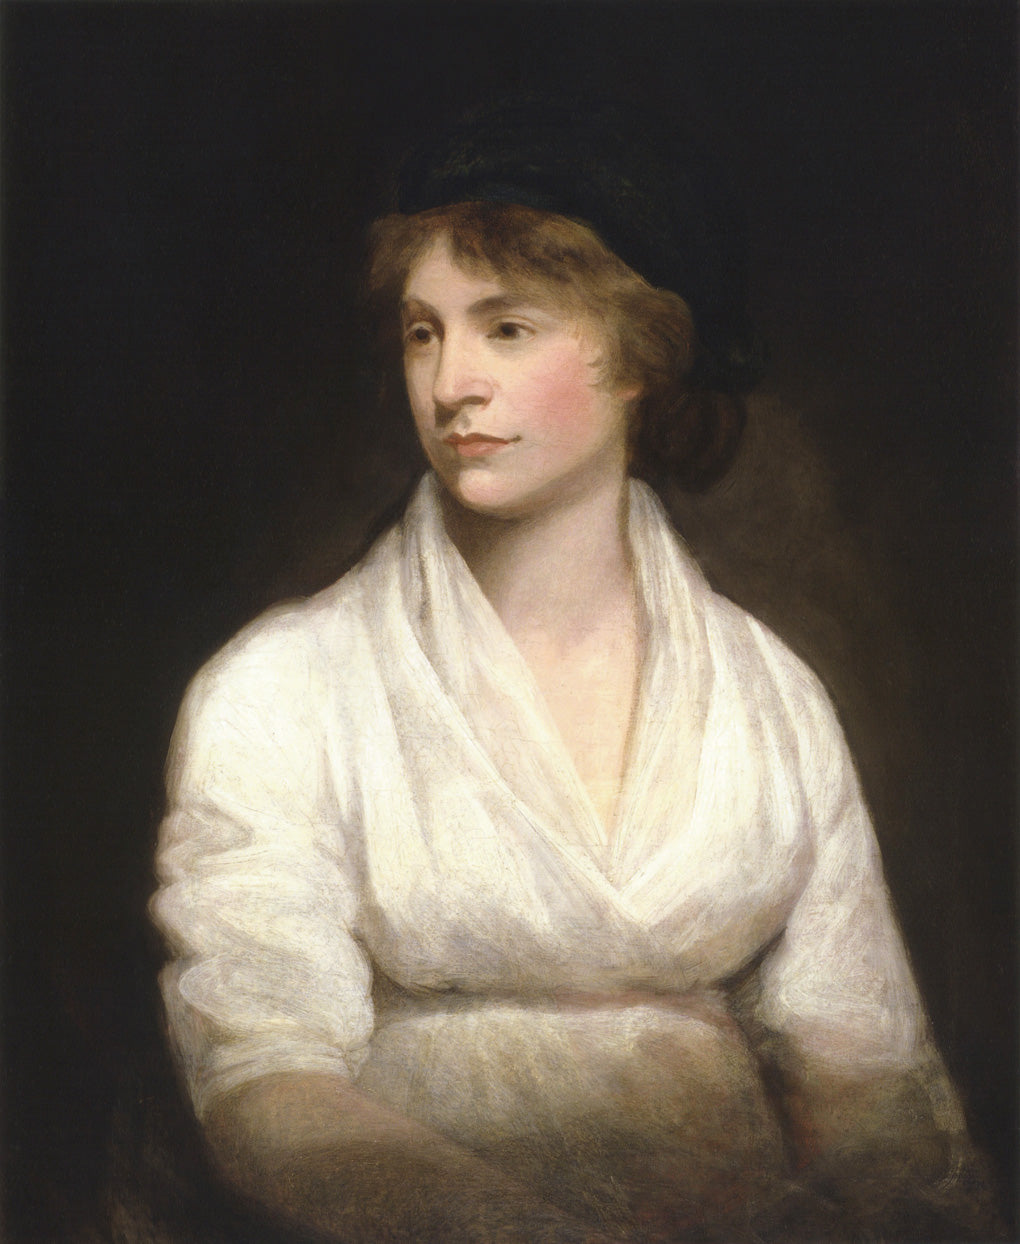 Tuesday 26 March - Lecture: Mary Wollstonecraft